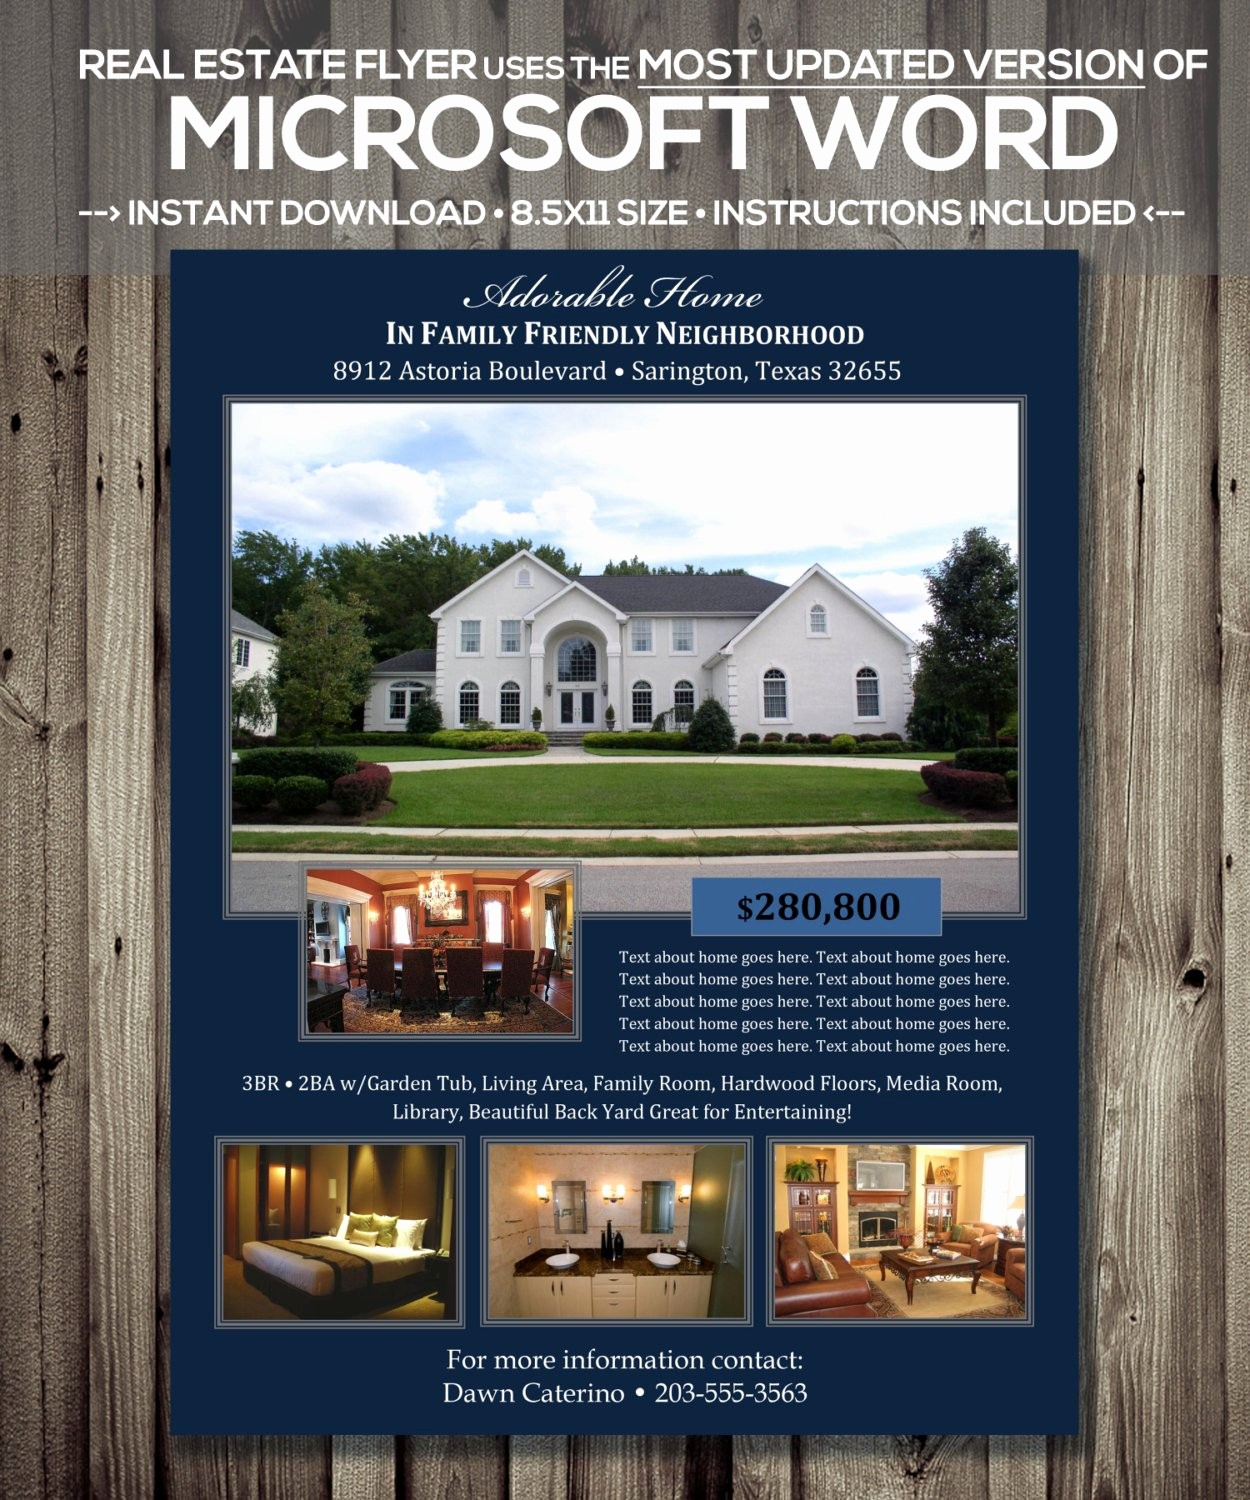 Home for Sale Flyer Templates Unique Real Estate Flyer Template Microsoft Word Cx Version